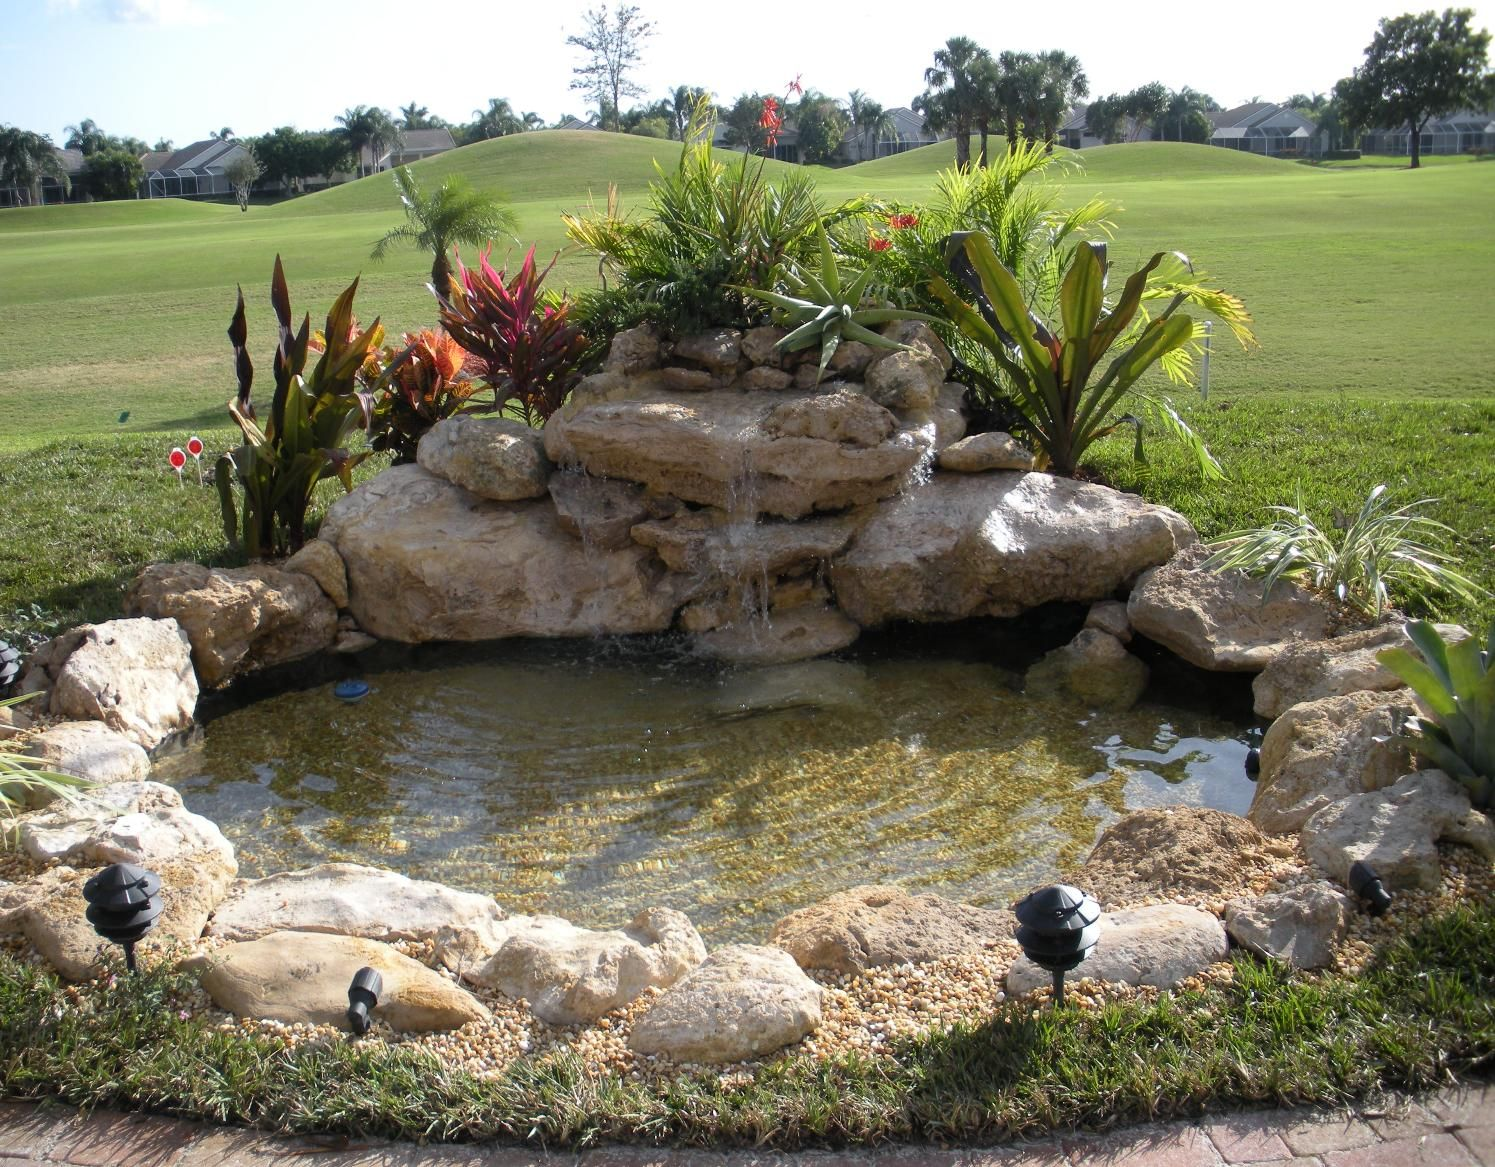 Landscaping waterfalls and fish ponds ways to maintain for Garden fish pond ideas